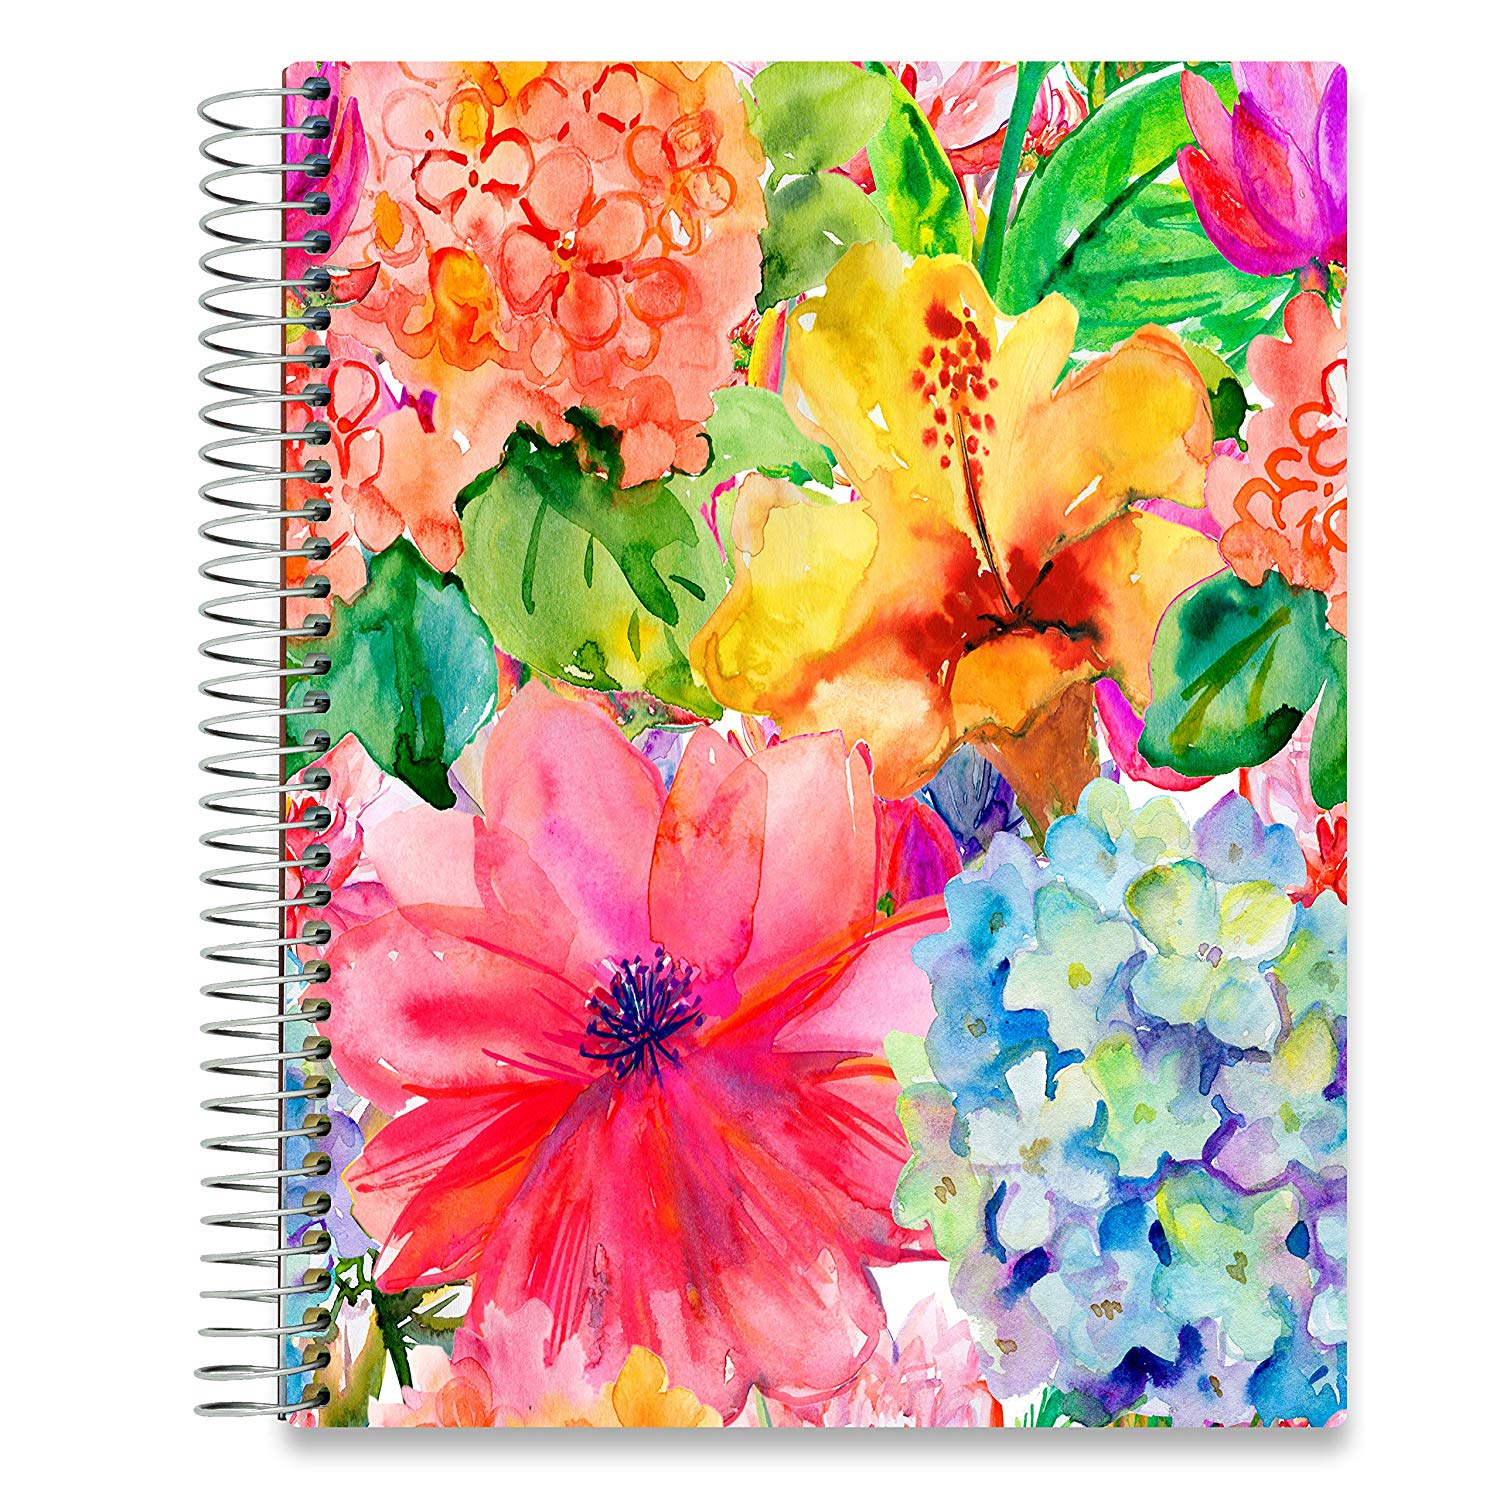 NEW: April 2020-2021 Planner - 8.5x11 - Hibiscus-Office Product-Tools4Wisdom